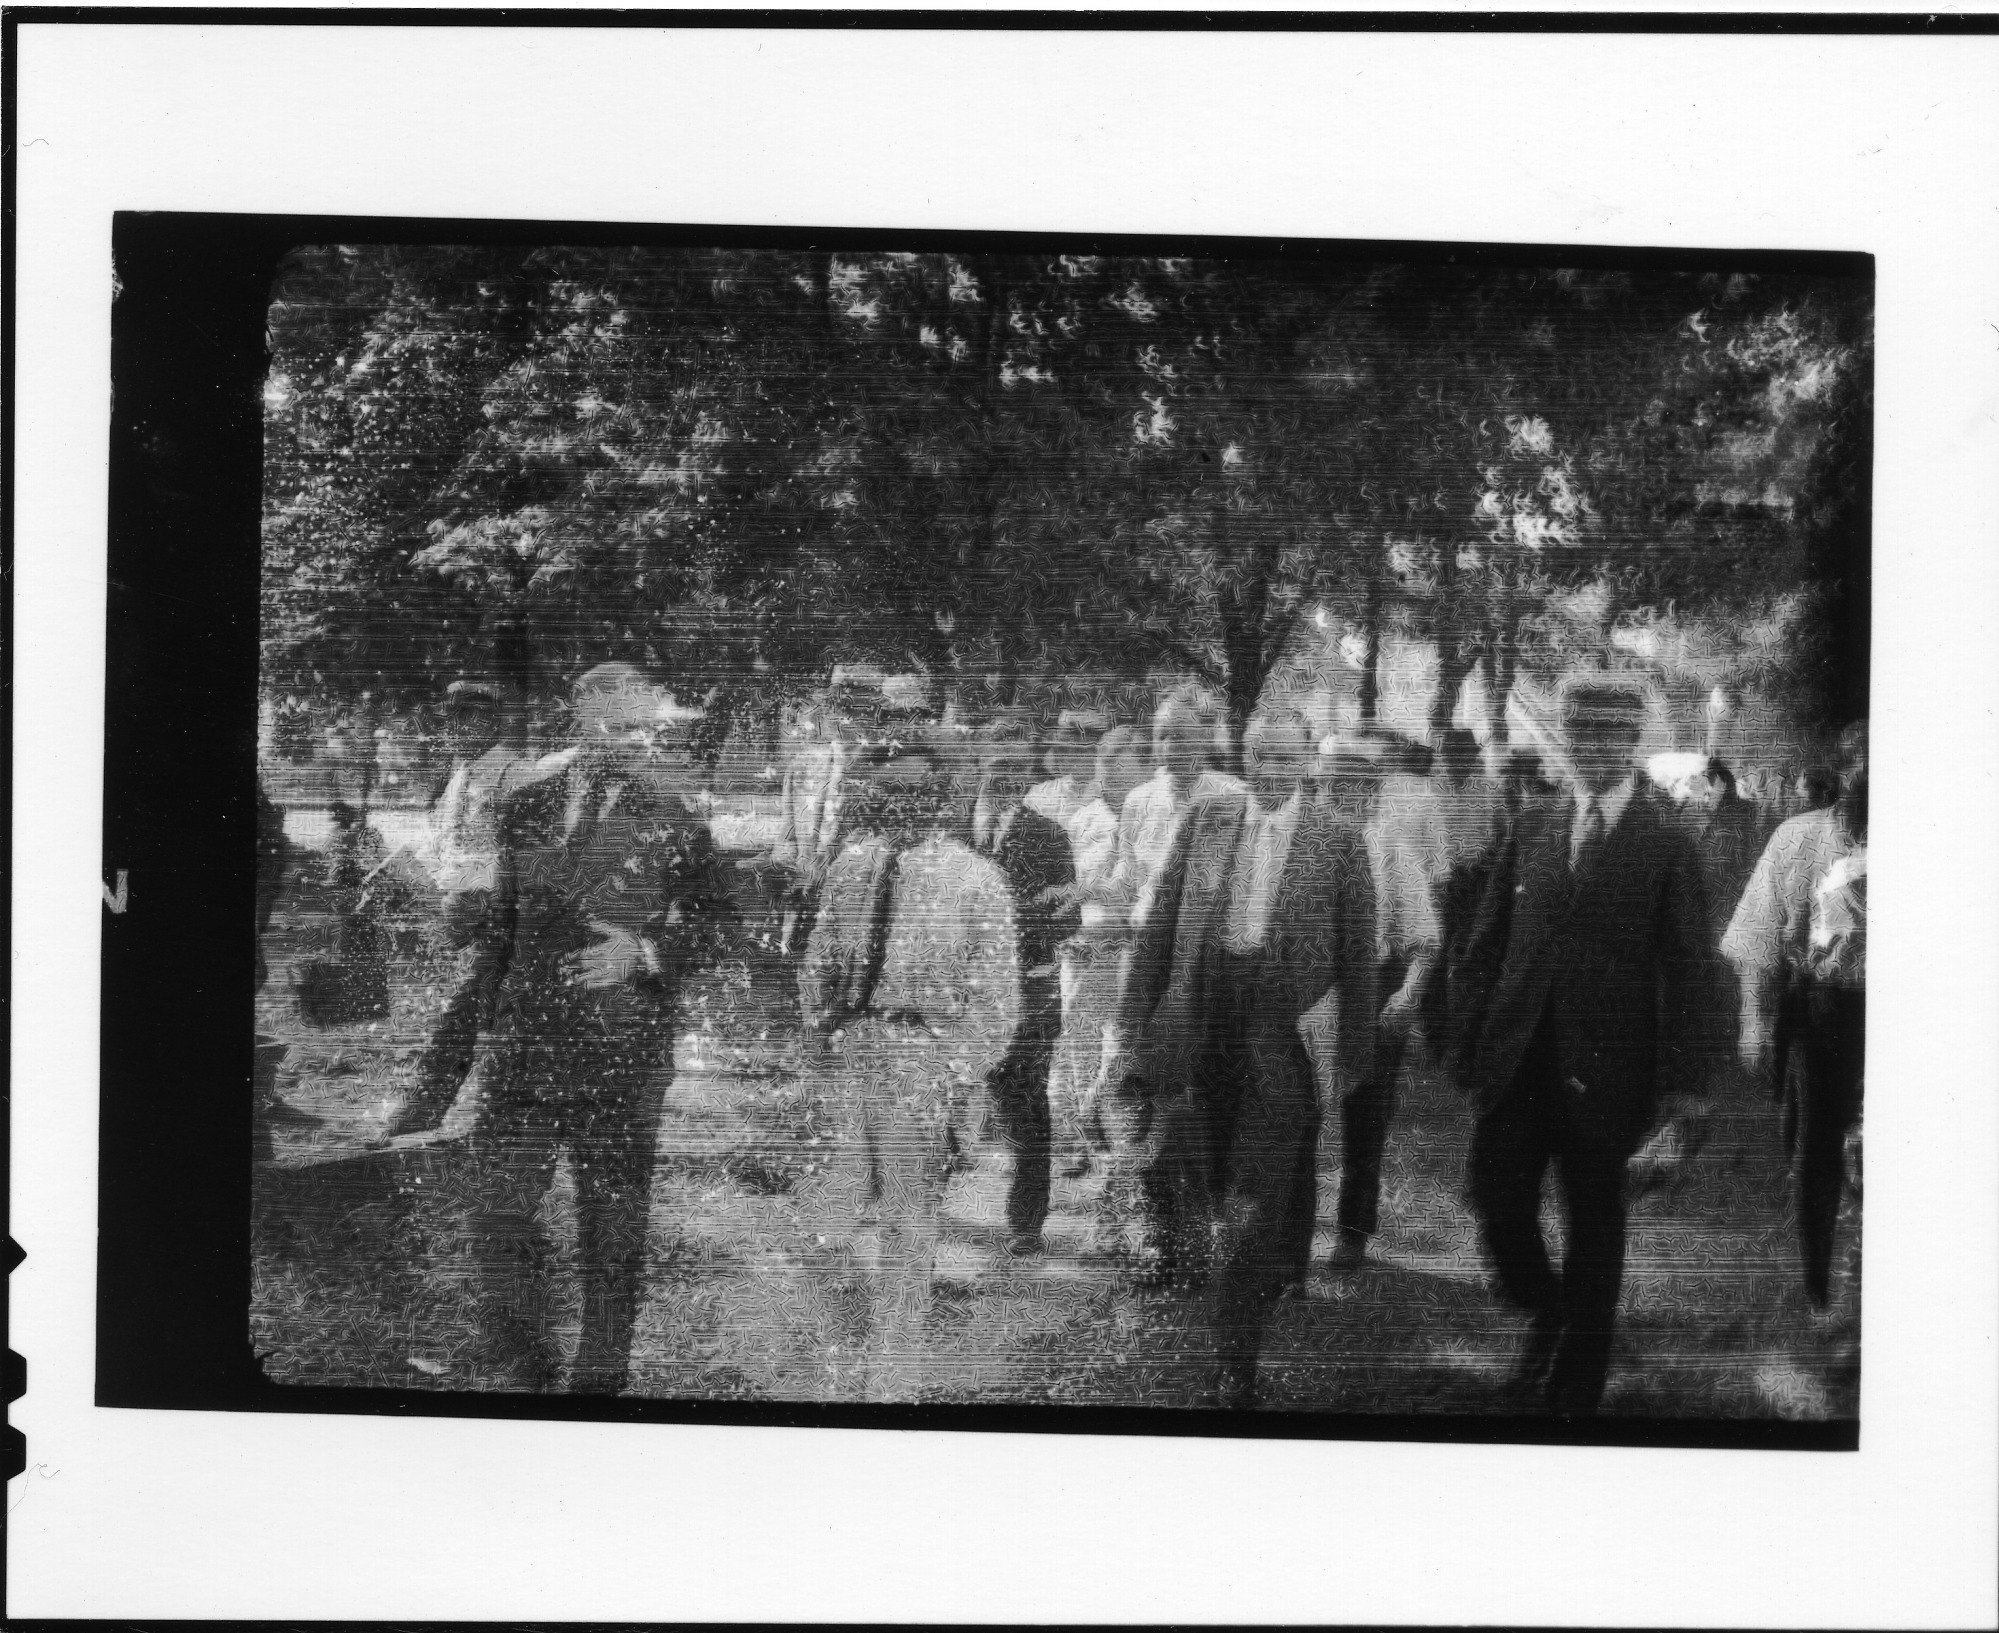 Tennessee v. John T. Scopes Trial: Group of men walking